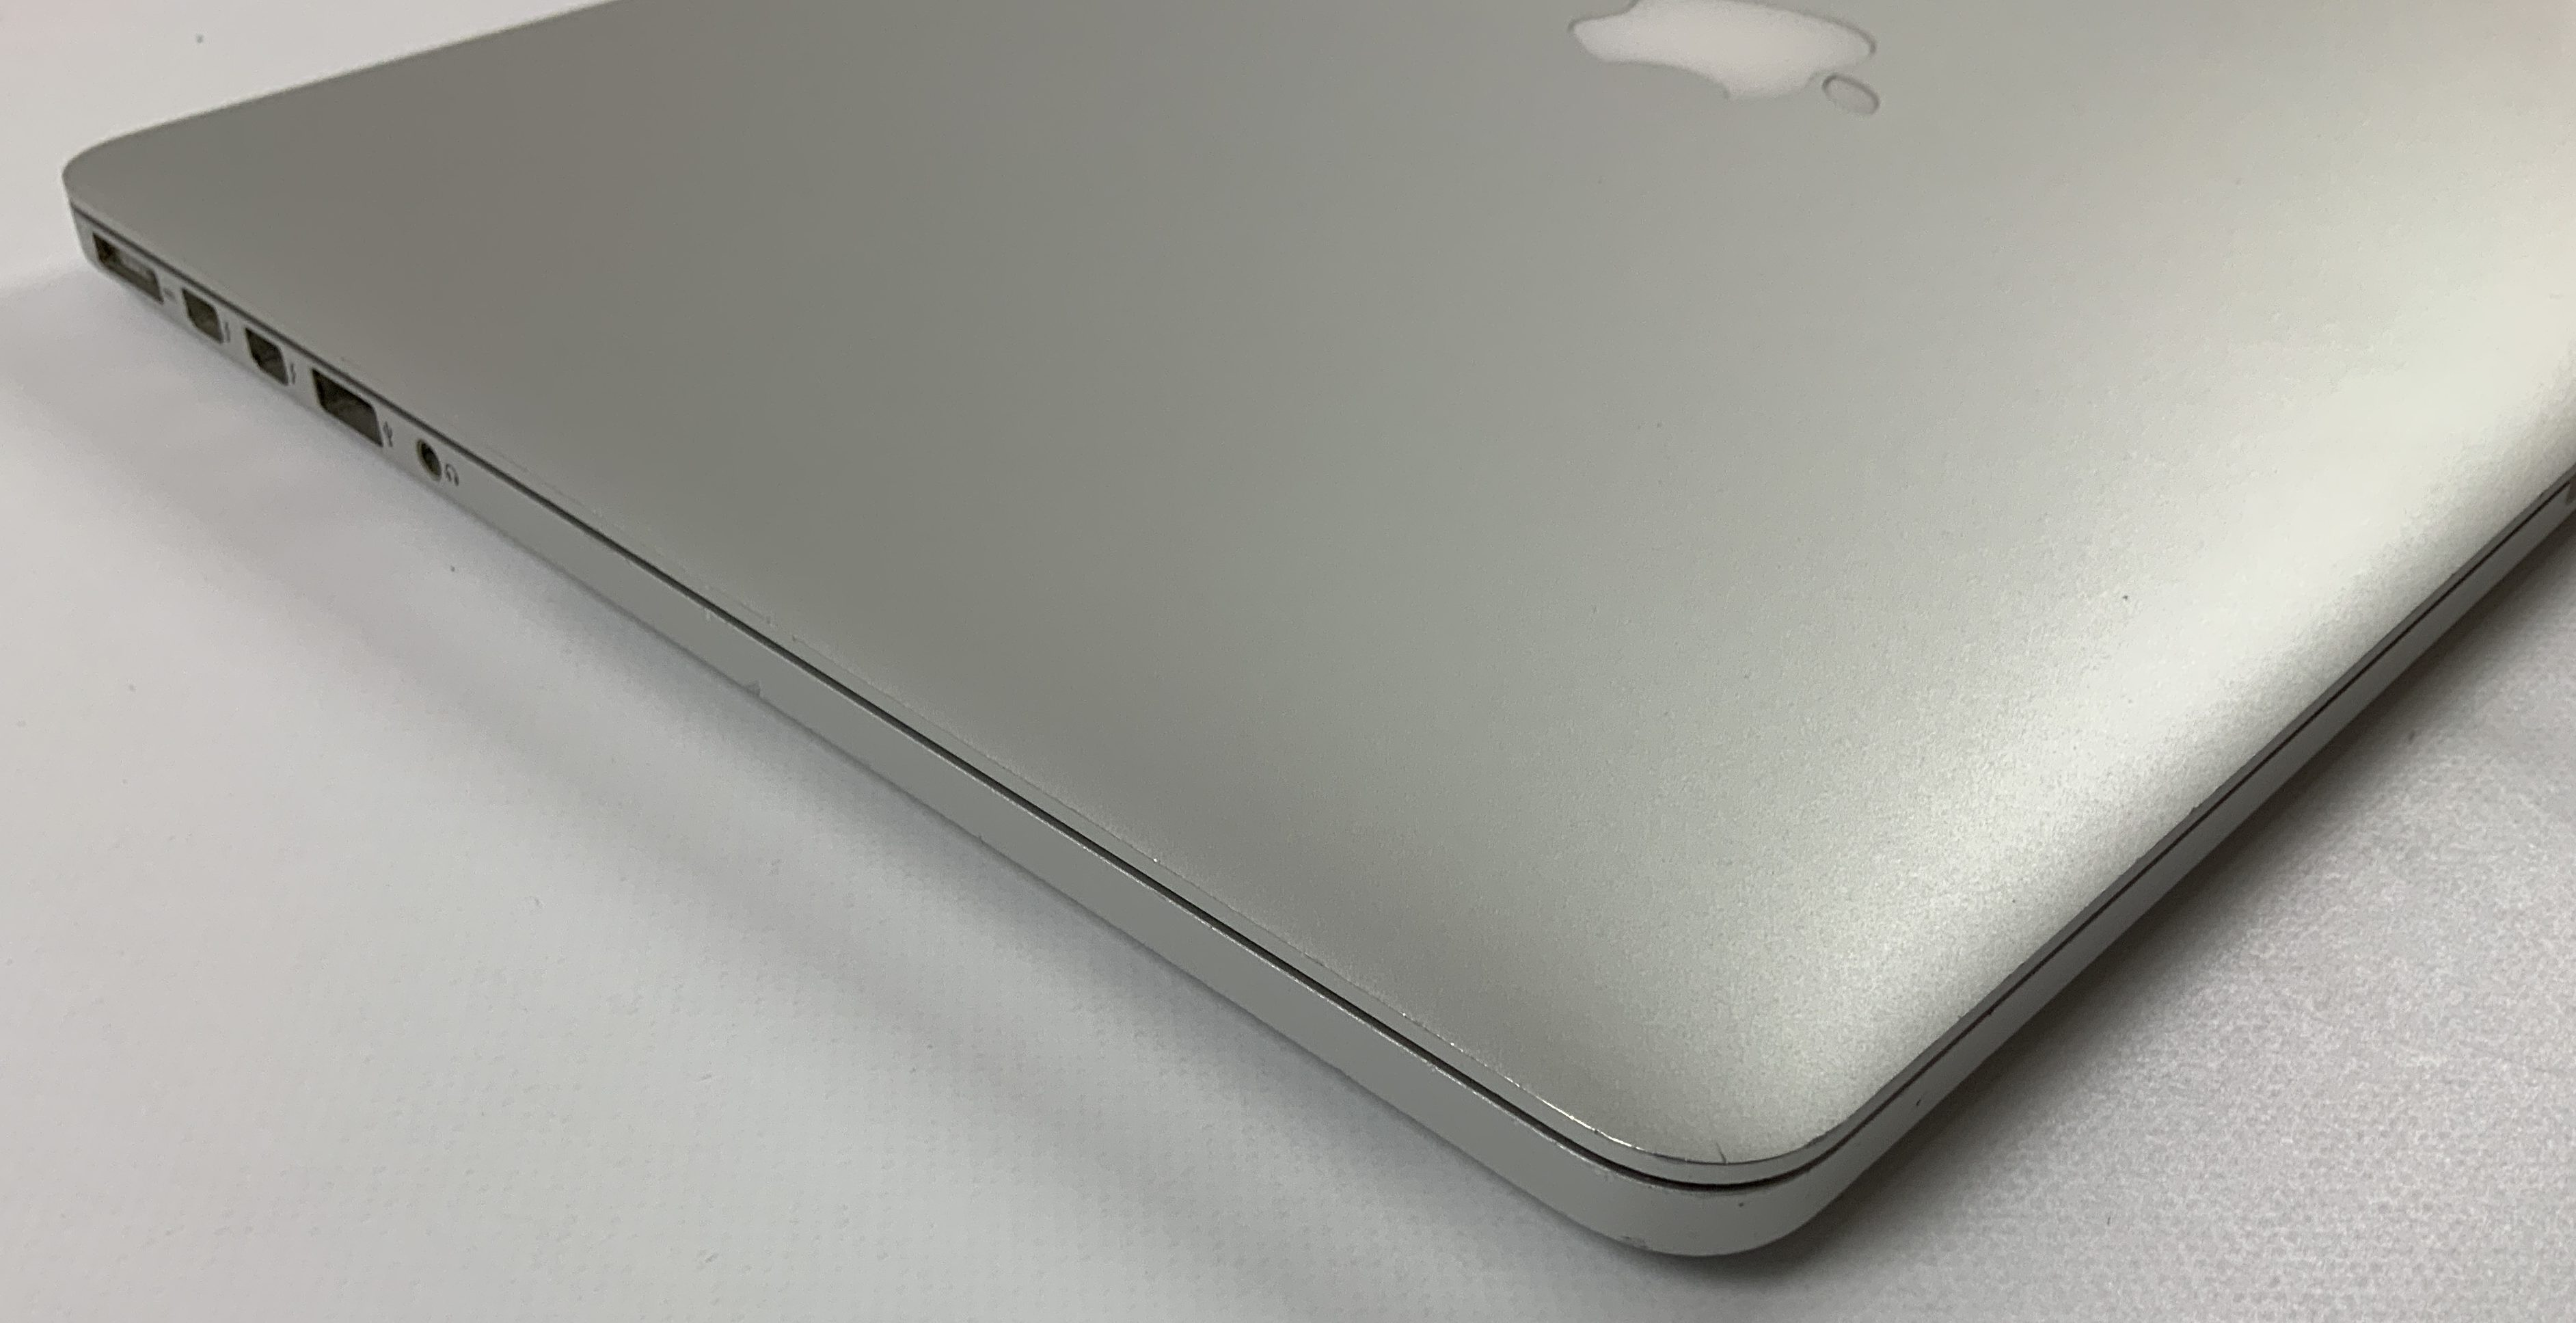 "MacBook Pro Retina 15"" Mid 2015 (Intel Quad-Core i7 2.5 GHz 16 GB RAM 512 GB SSD), Intel Quad-Core i7 2.5 GHz, 16 GB RAM, 512 GB SSD, immagine 3"